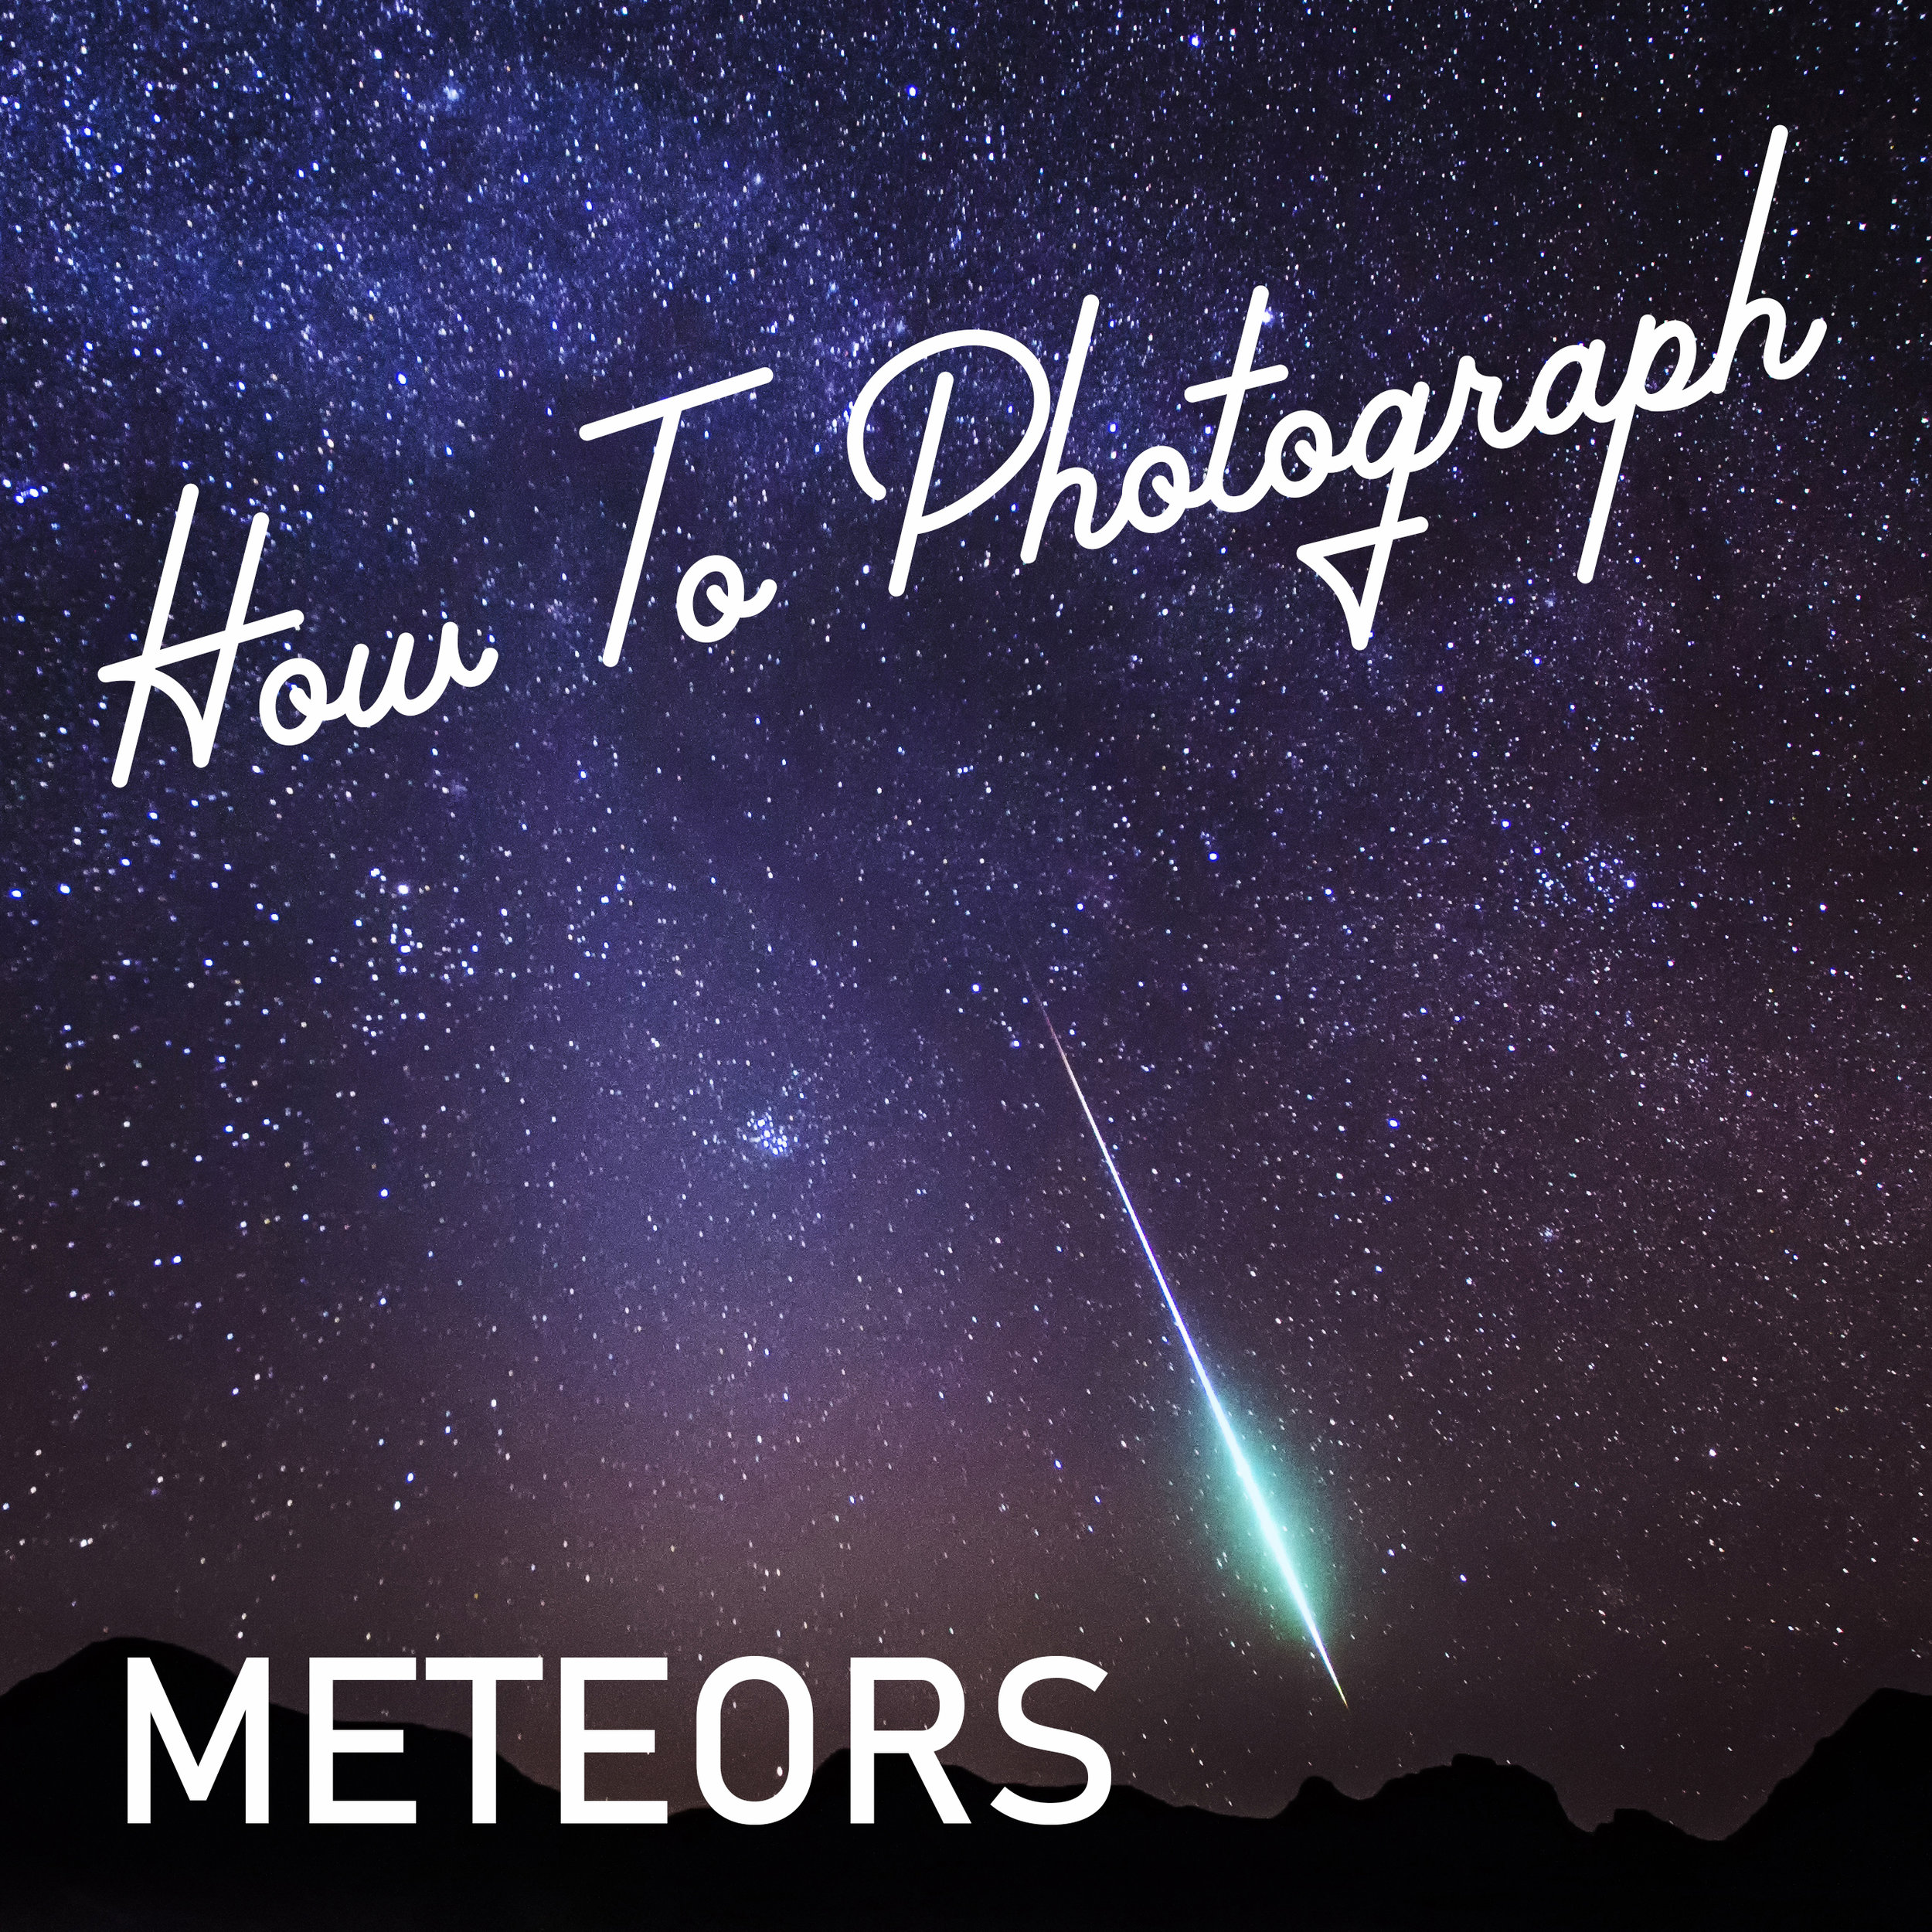 how to photograph meteor meteors meteorshower fireball shooting star